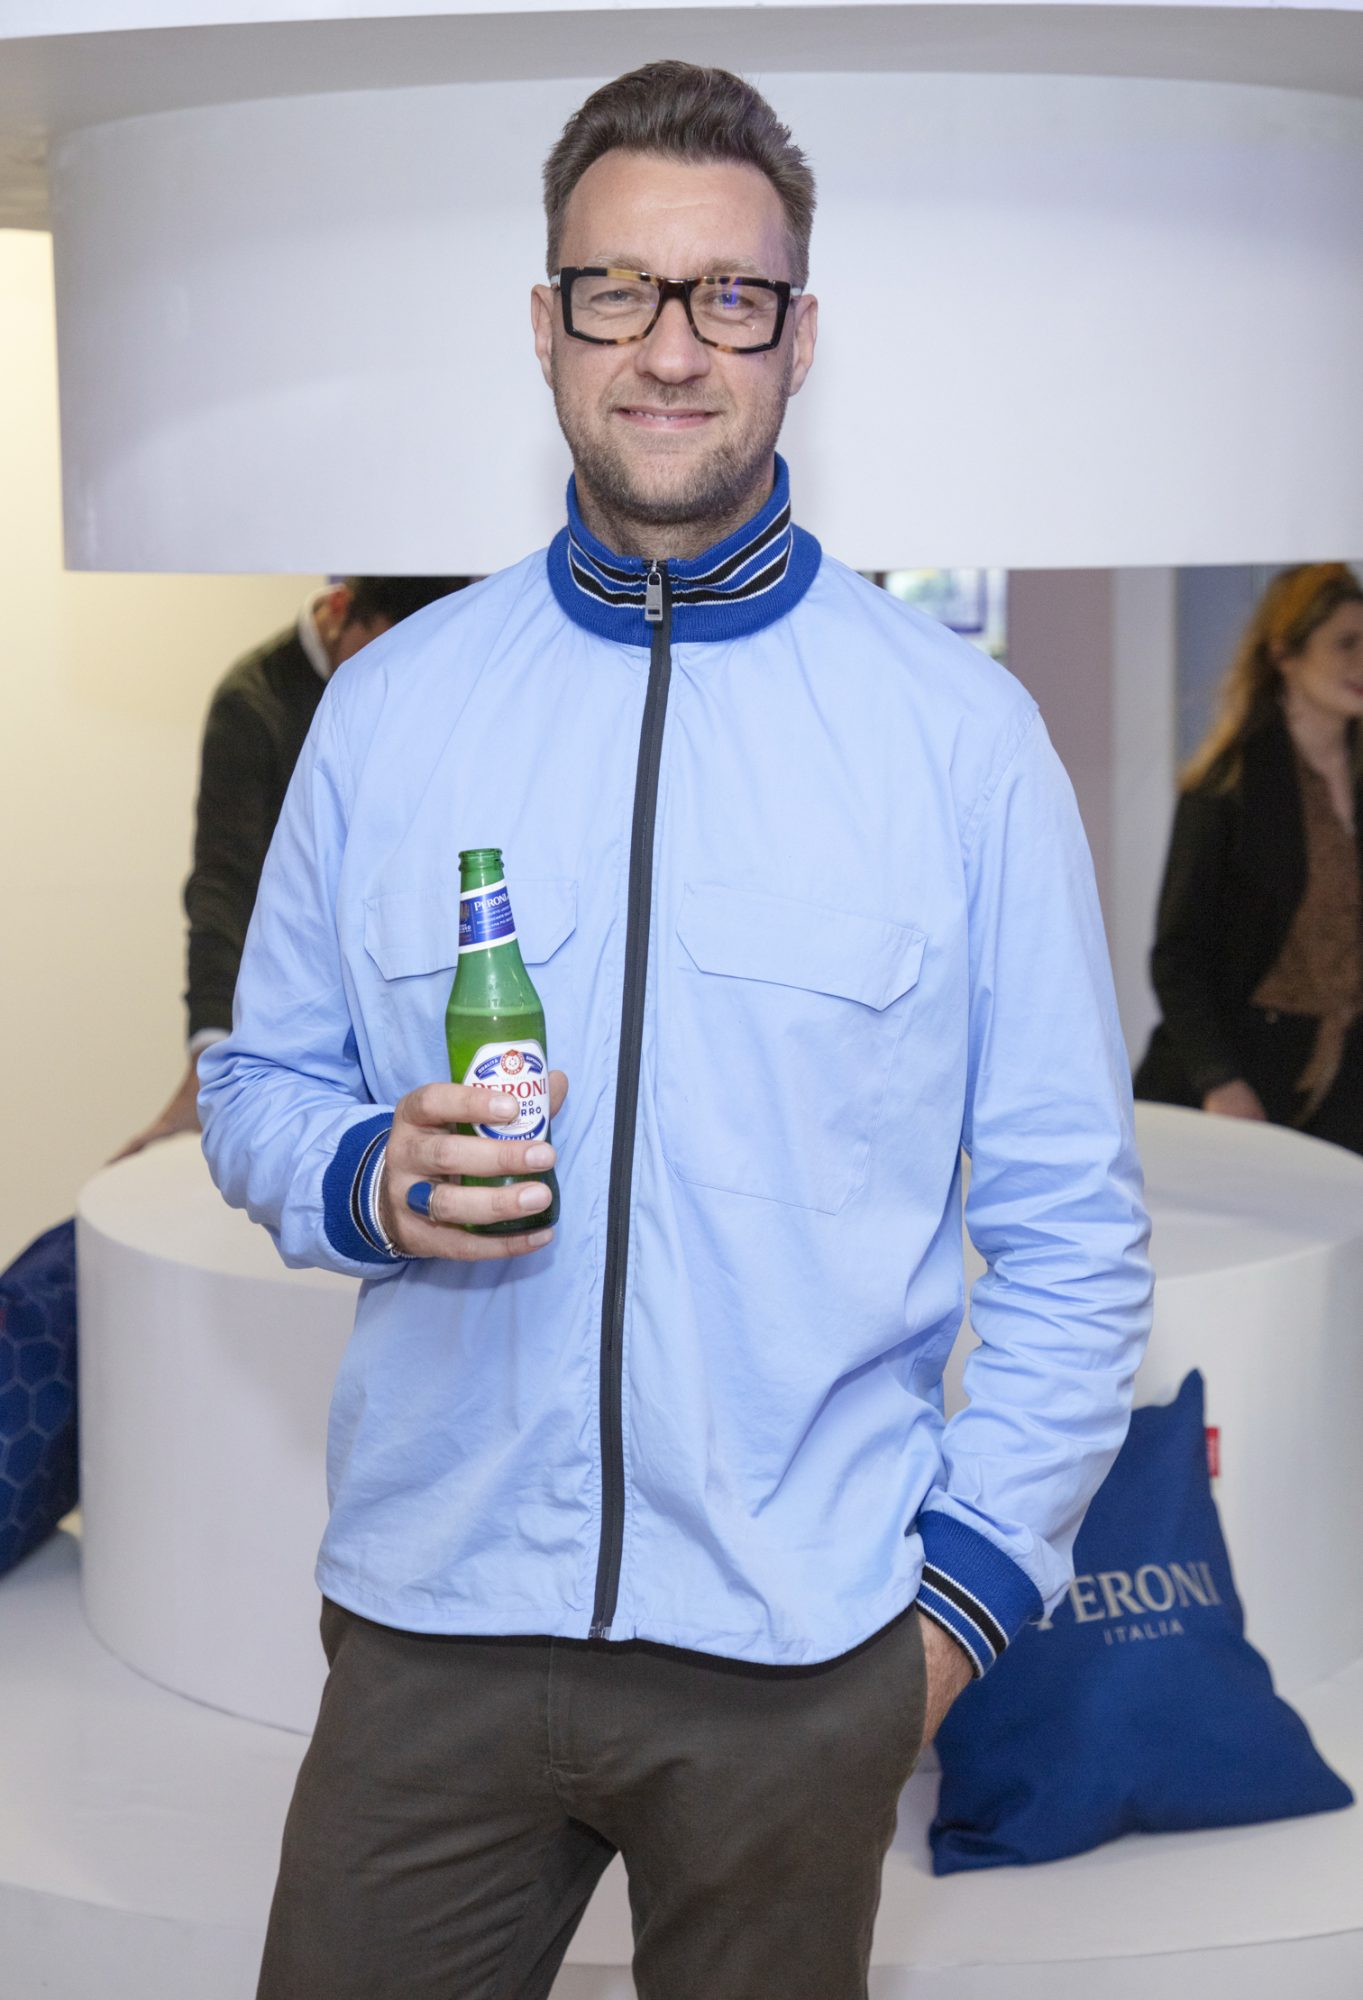 Federico Riezzo pictured at the launch of The House of Peroni, which is open at the RHA in Dublin until Sunday, 1st September 2019. This year's residency sees the RHA transformed into a stylish Peroni inspired experience, filled with food, drink and design. www.thehouseofperoni.com Photo: Anthony Woods.